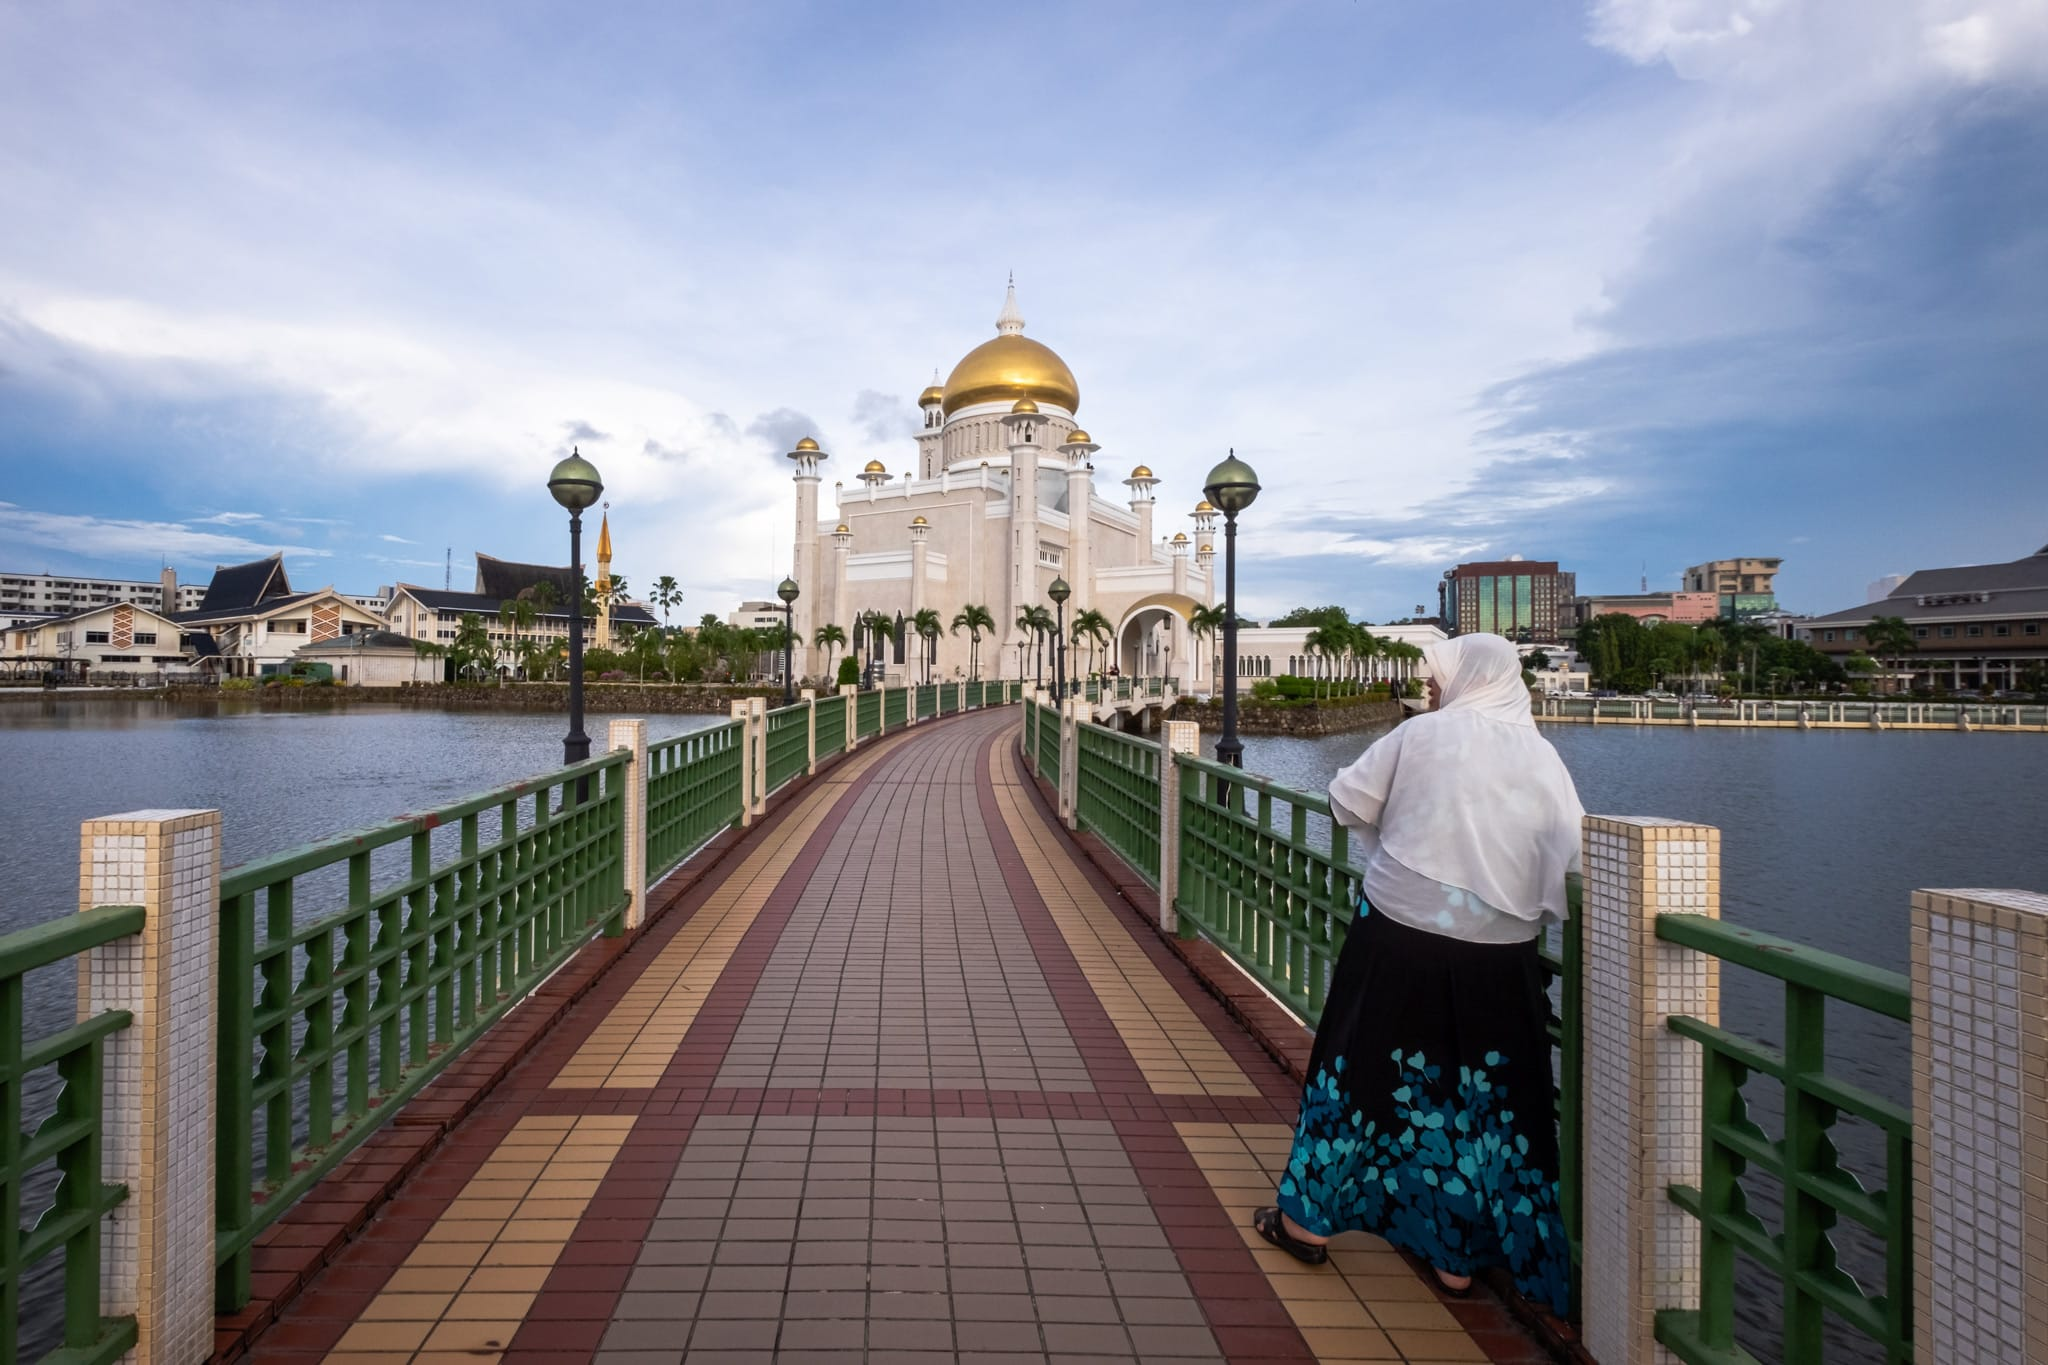 Follower of Islam on the bridge of the Sultan Omar Ali Saifuddien Mosque. Bandar Seri Begawan, Brunei.